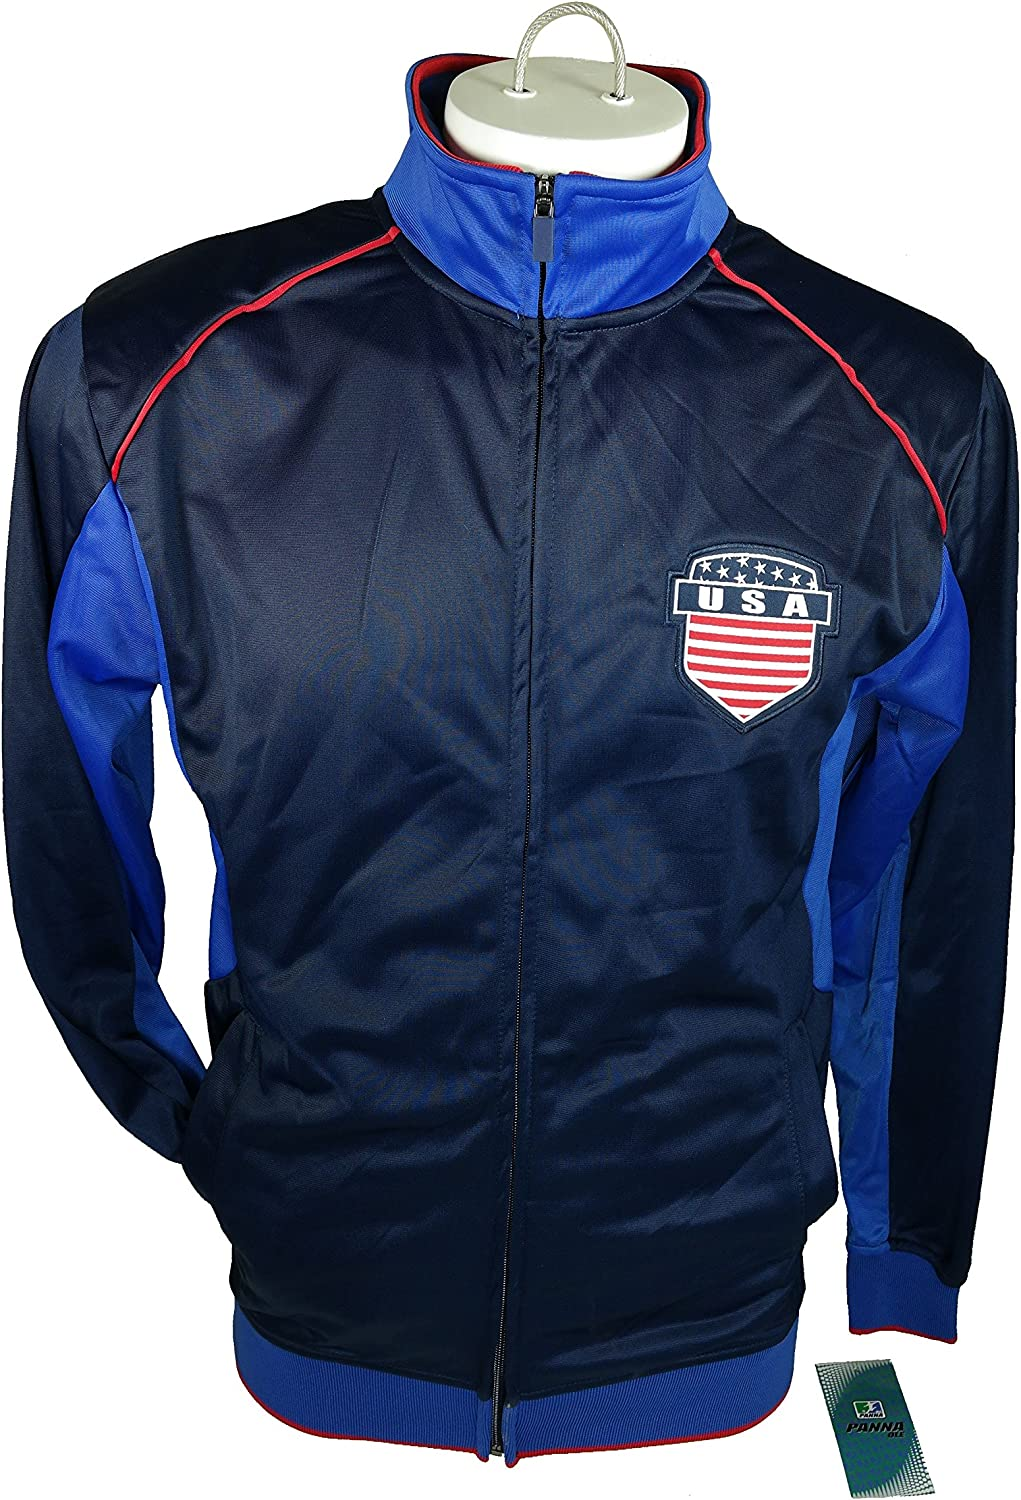 USA Soccer Official License Soccer Track Jacket Football Merchandise Adult Size 001 Extra Large